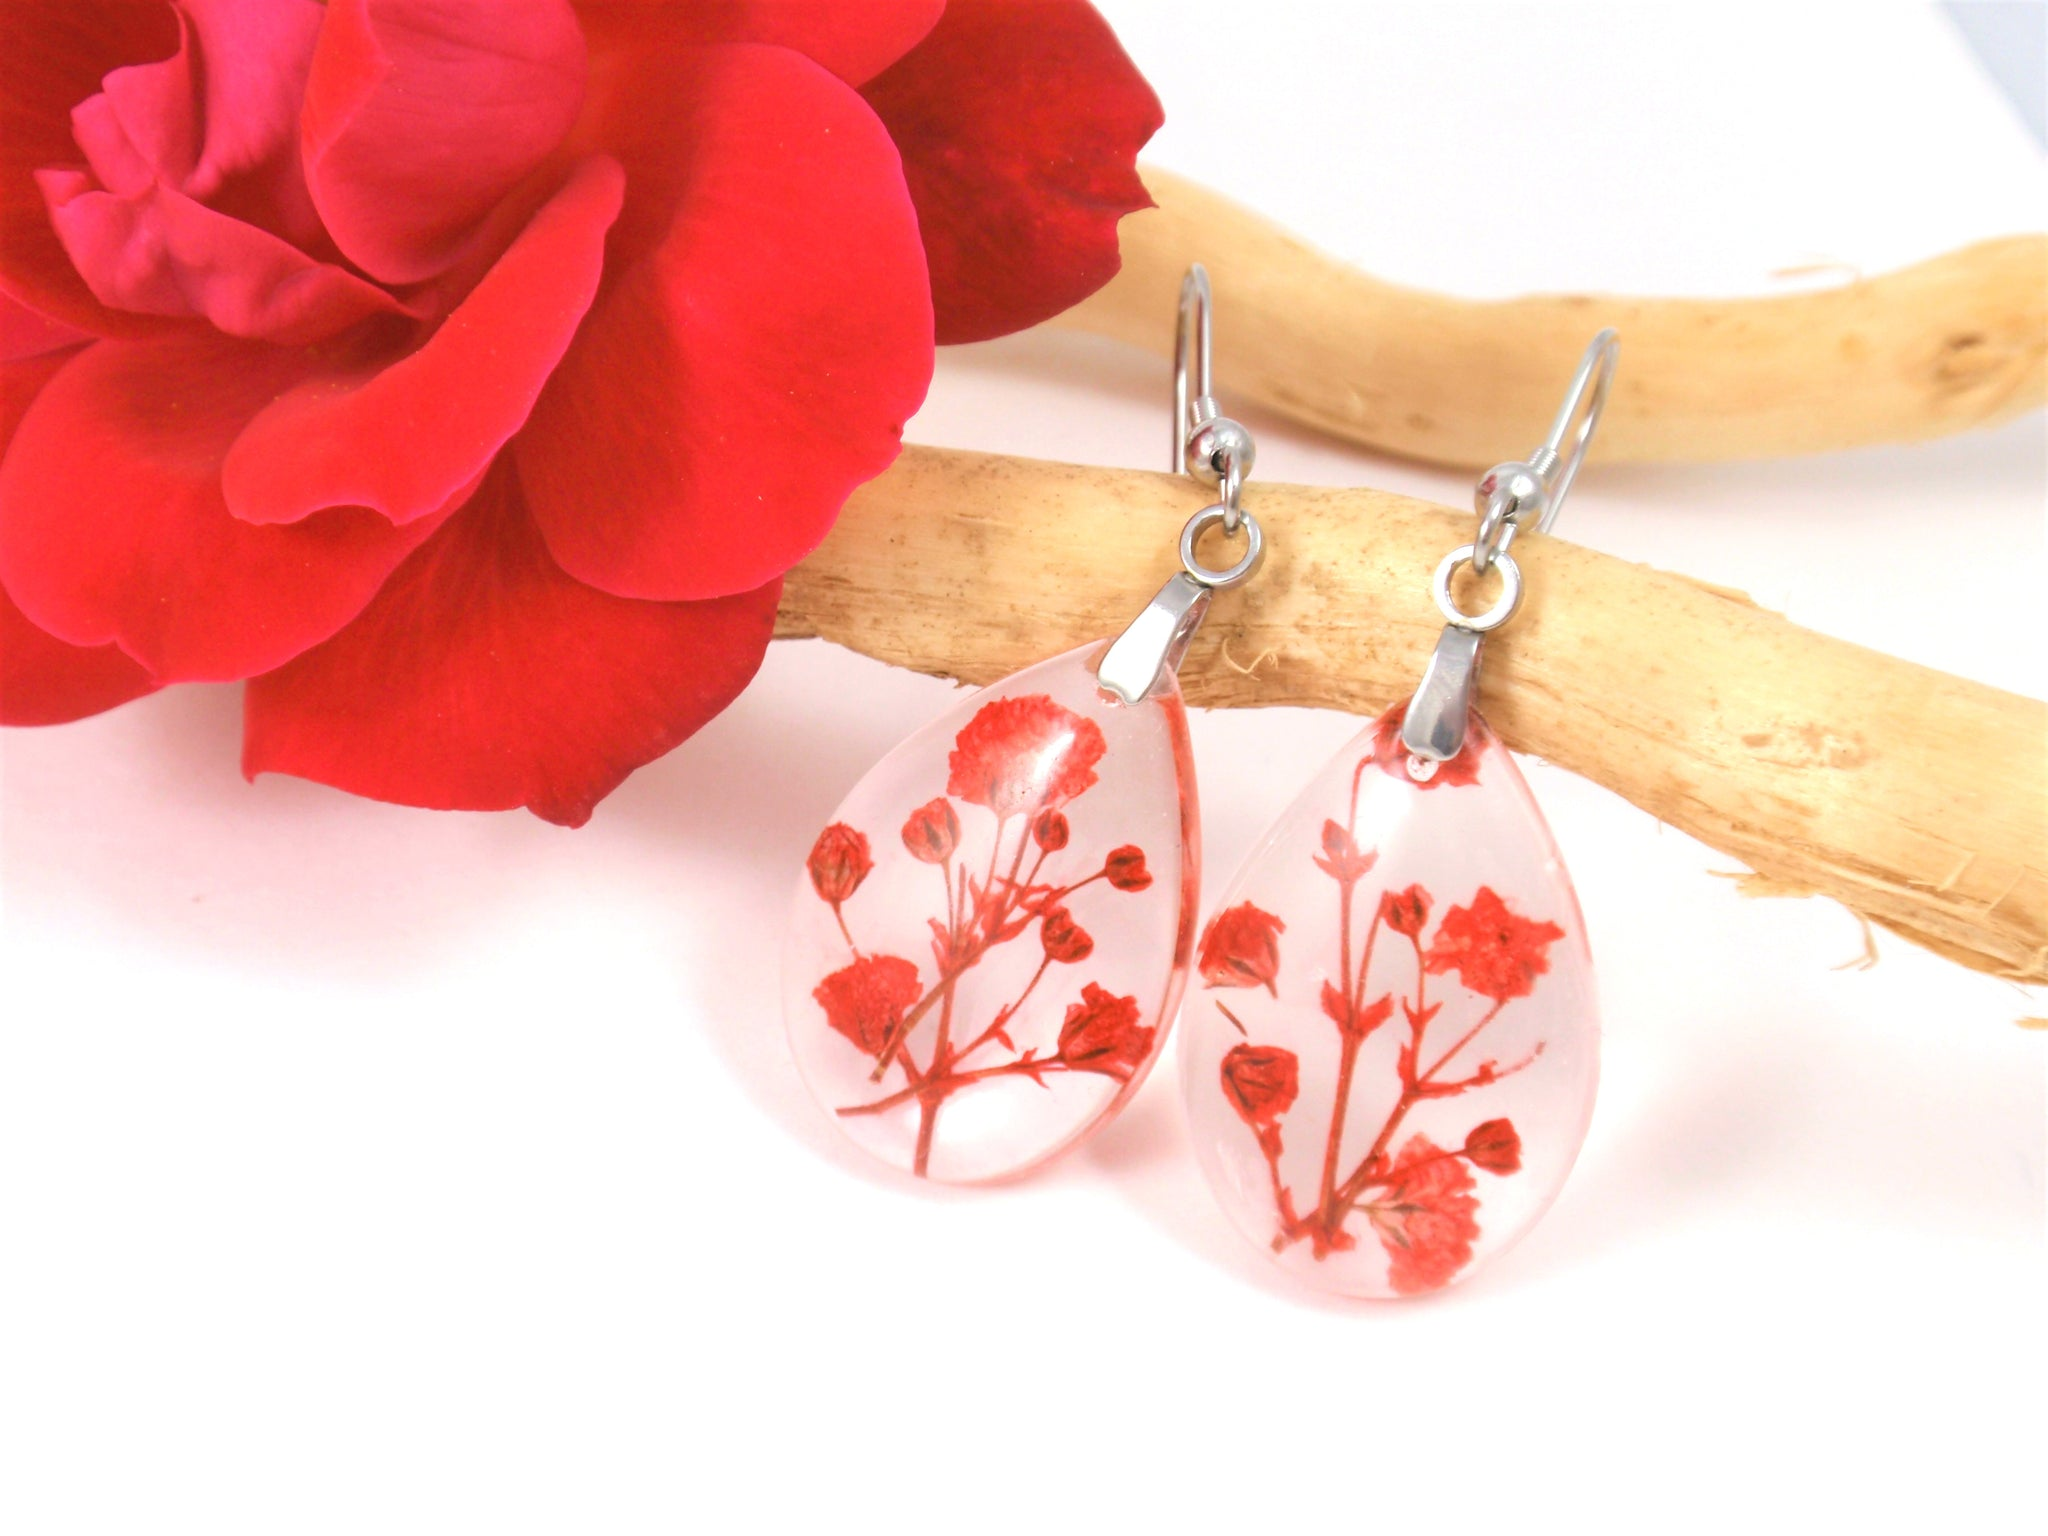 Pressed Flowers handcrafted earrings